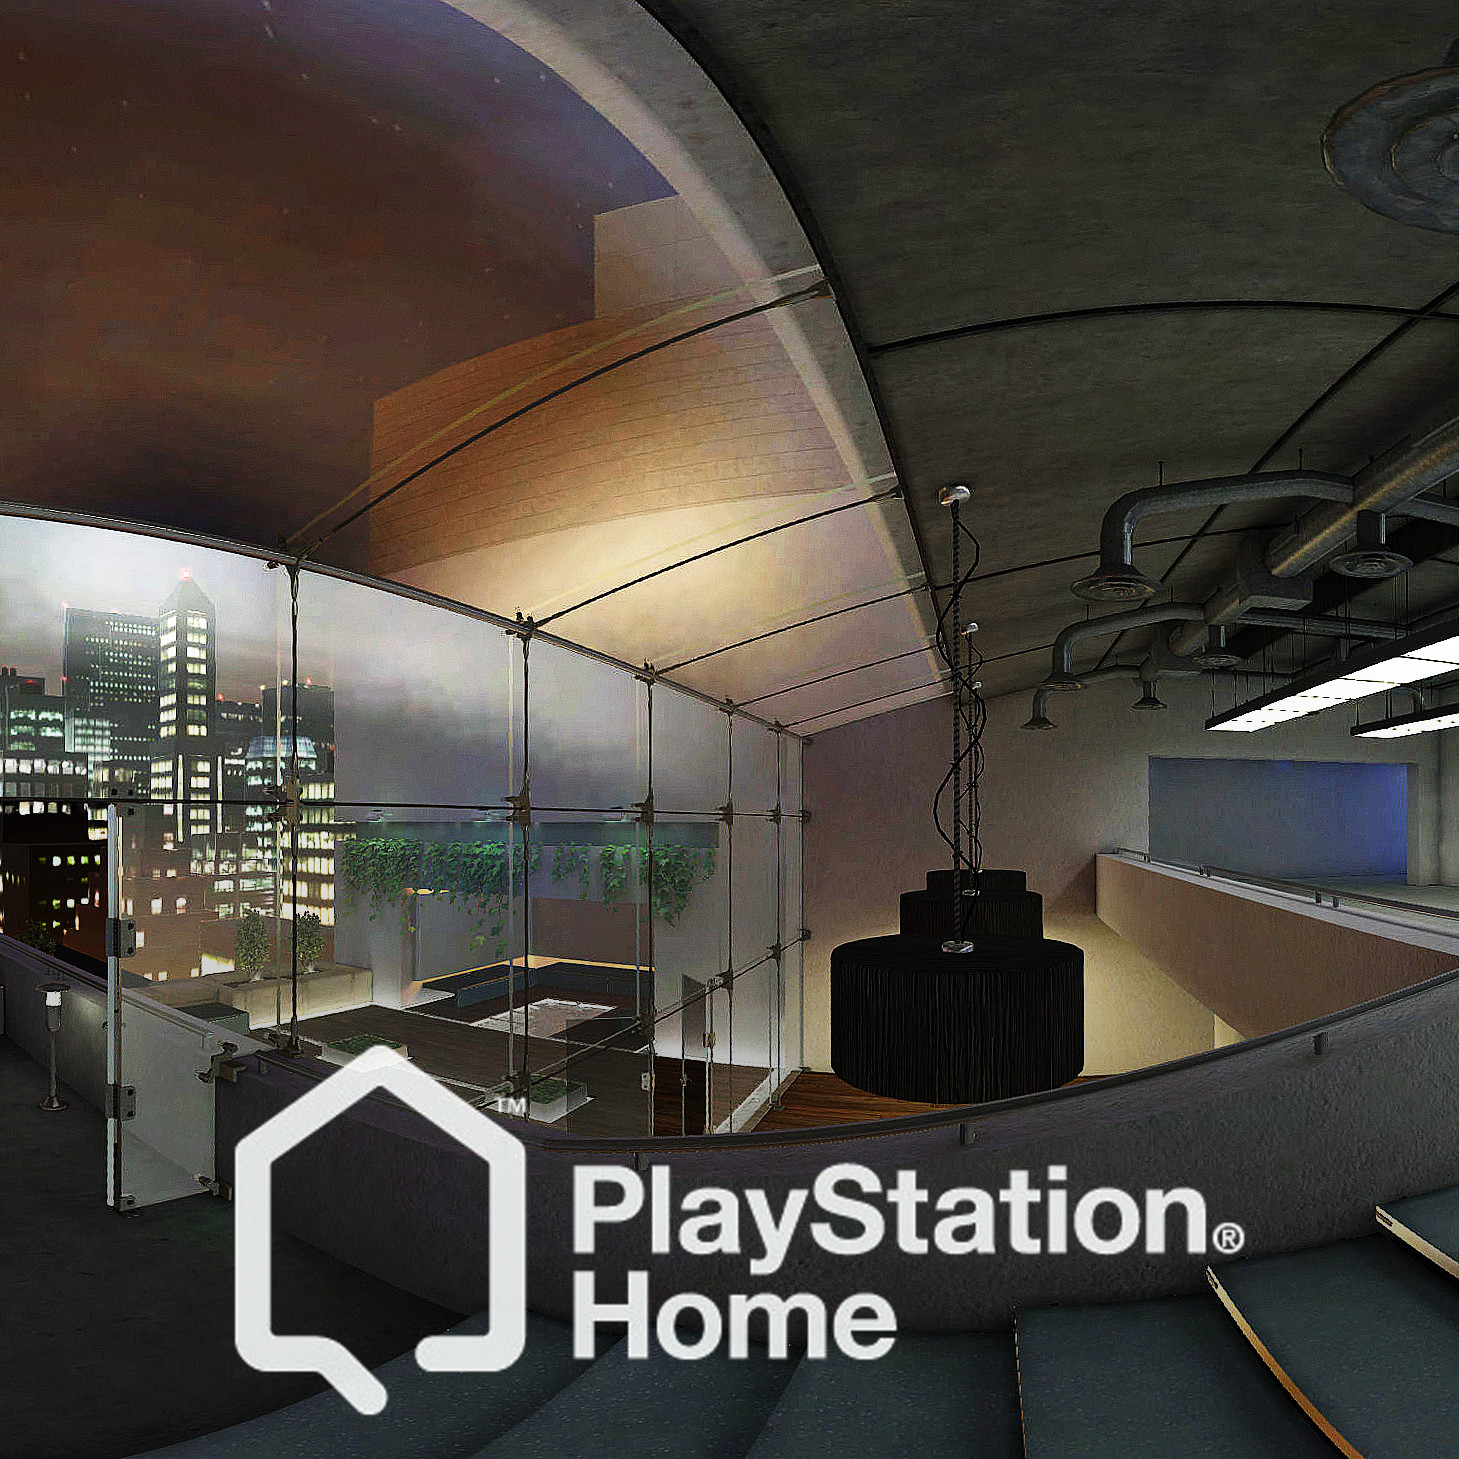 PlayStation Home: City Penthouse